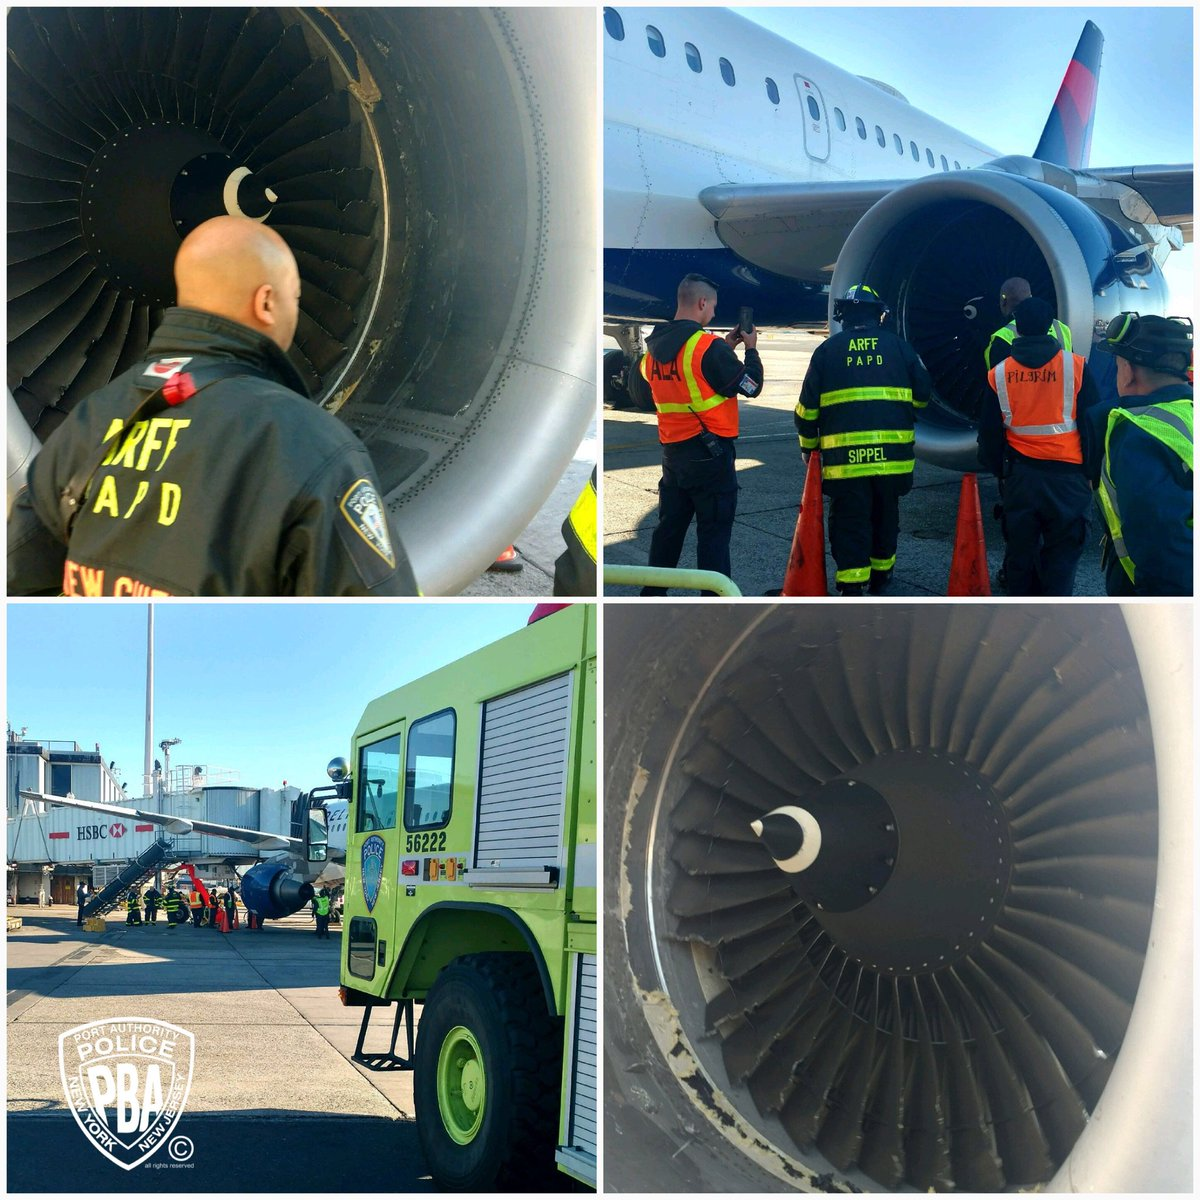 An Airbus 319 Suffered A Bird Strike On Takeoff Aircraft Returned To Jfk Met Inspected By The Papd Rescue Fire Fighter Arff Unit